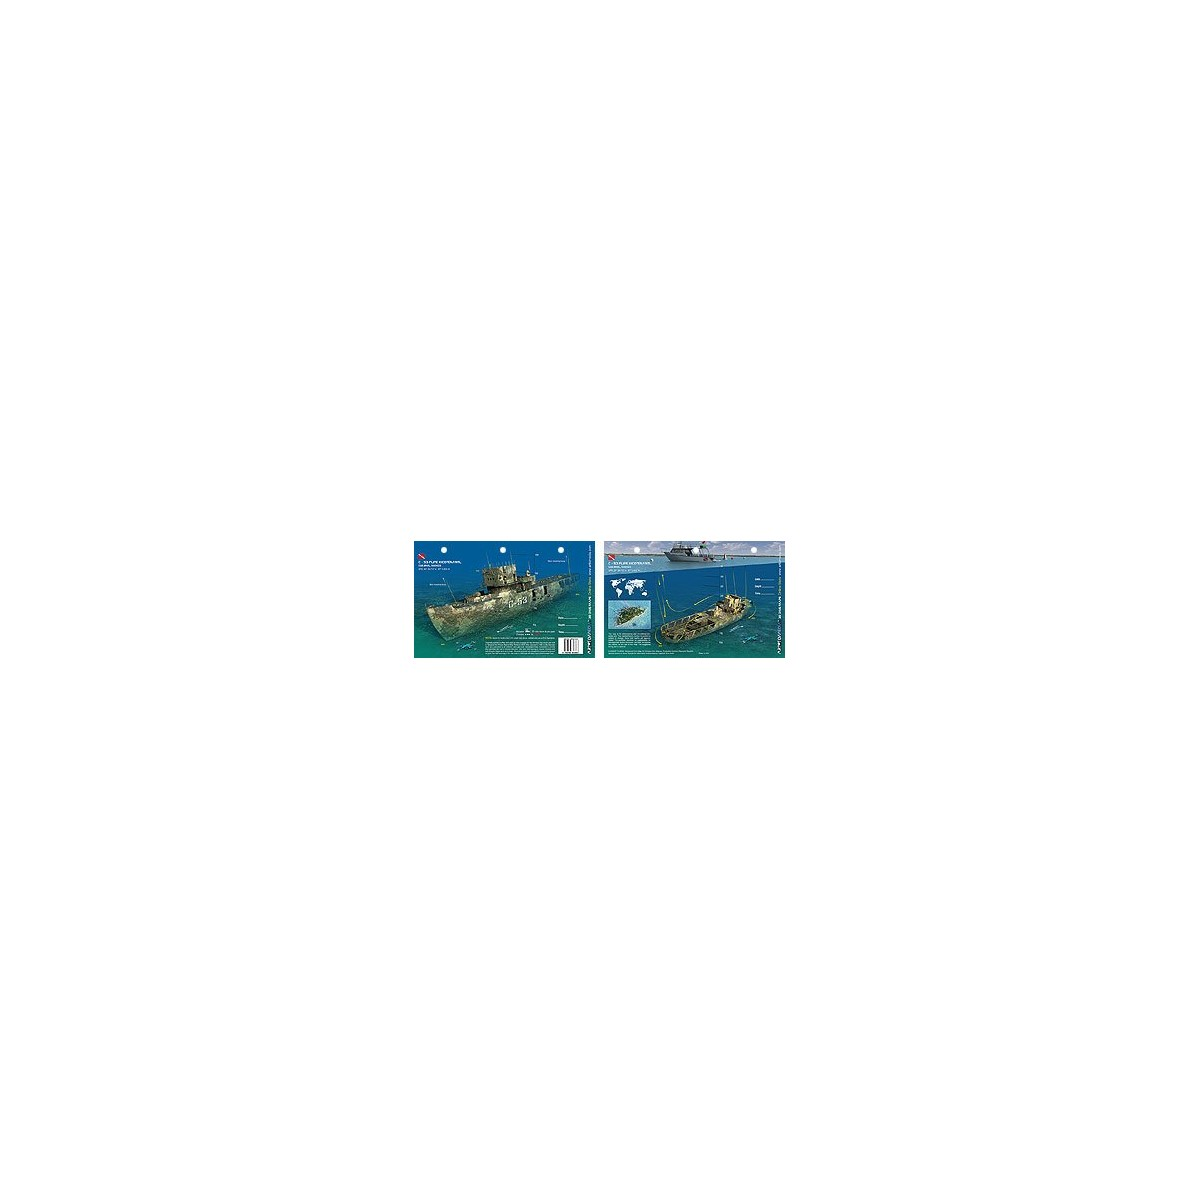 C-53 Felipe Xicotencatl in Cozumel (8.5 x 5.5 Inches) (21.6 x 15cm) - New Art to Media Underwater Waterproof 3D Dive Site Map